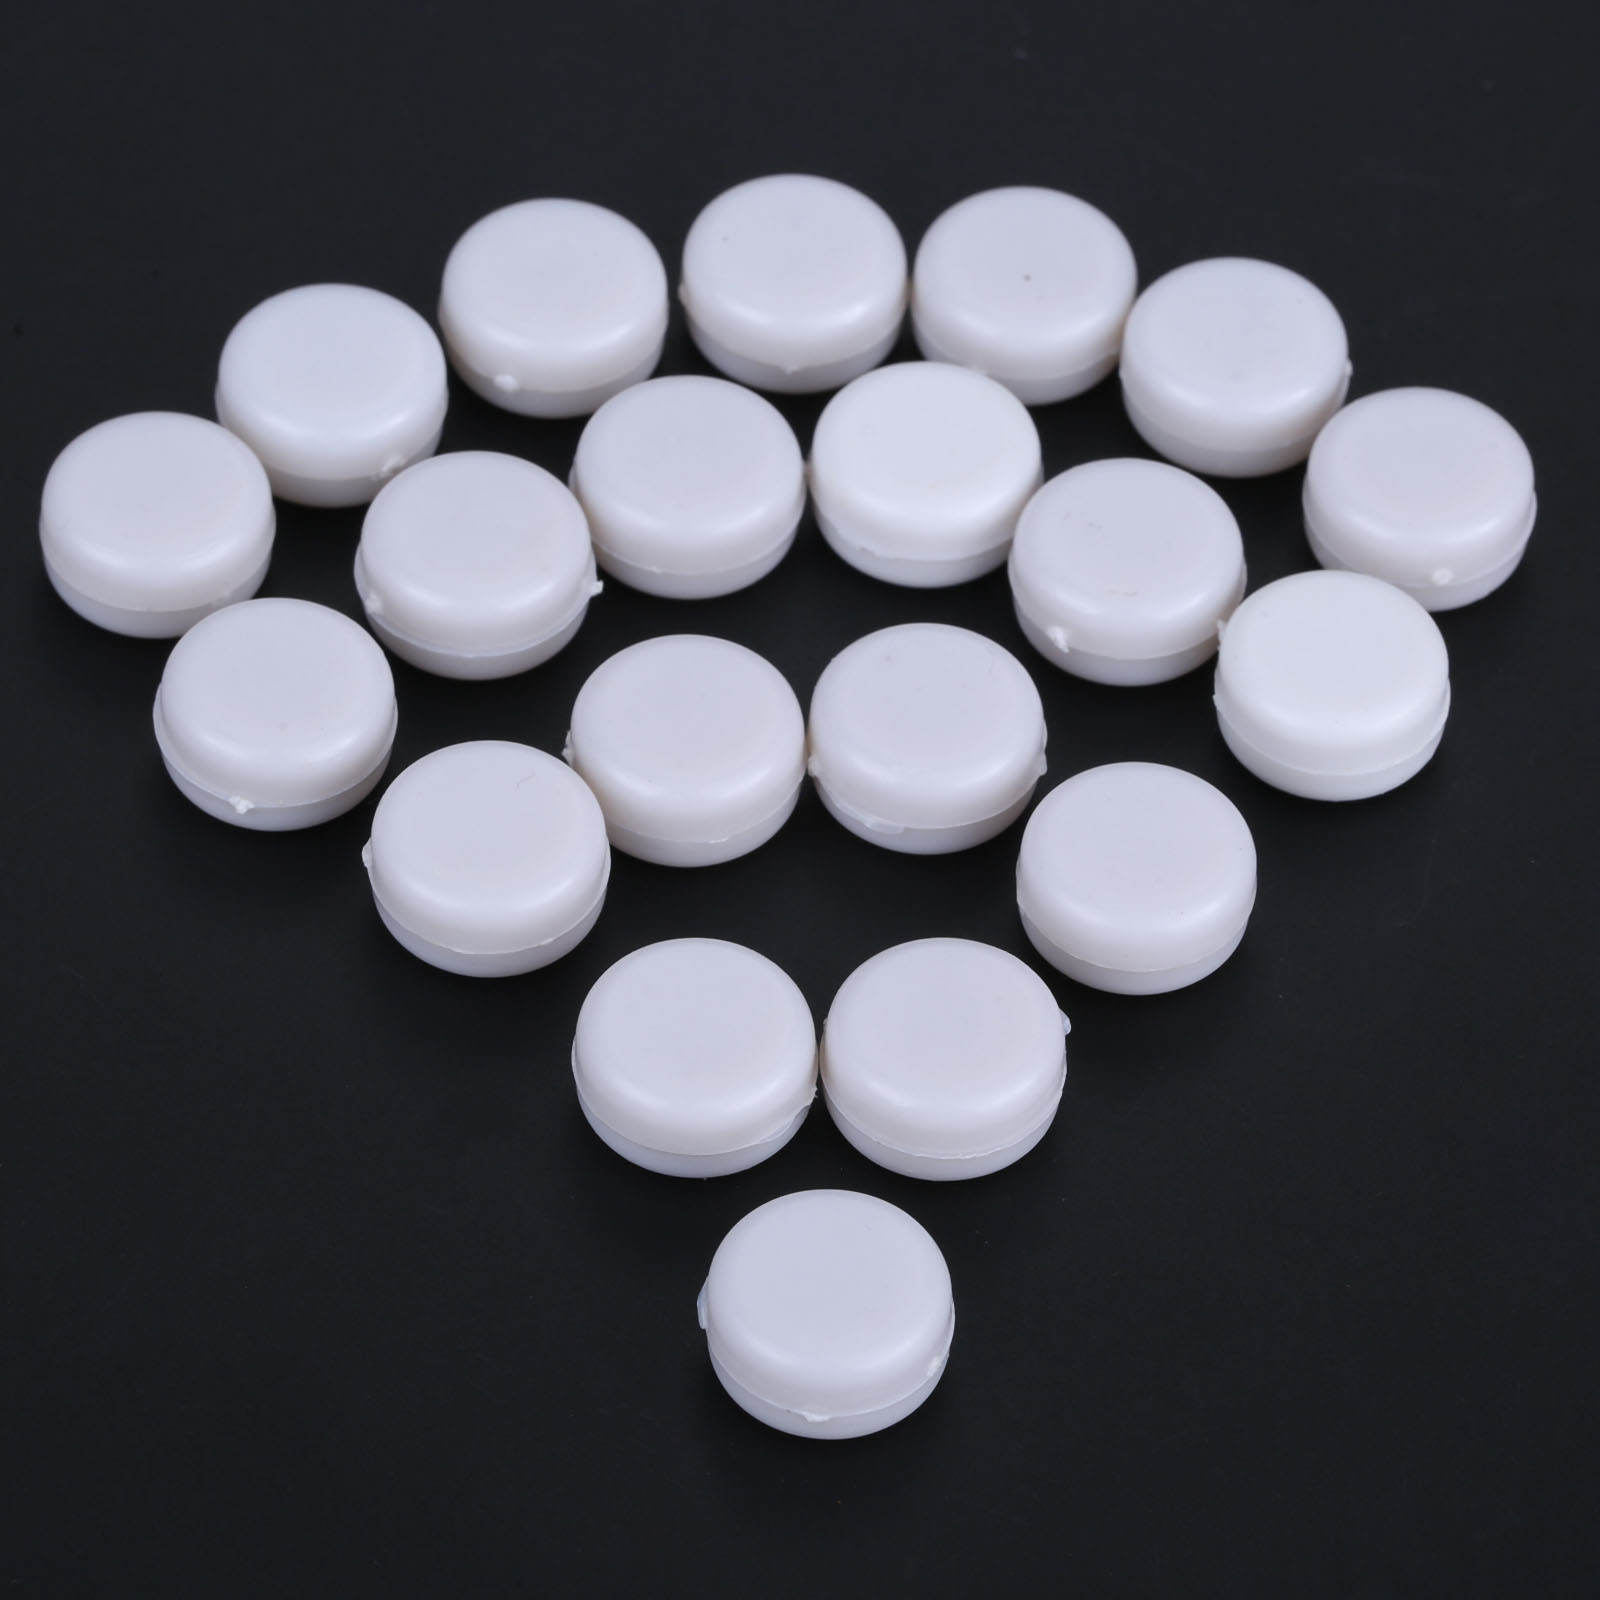 Toy Insert Bell Rattle Squeaker-Toy Plastic White Pet 20pcs 15mm Box Repair-Fix Baby